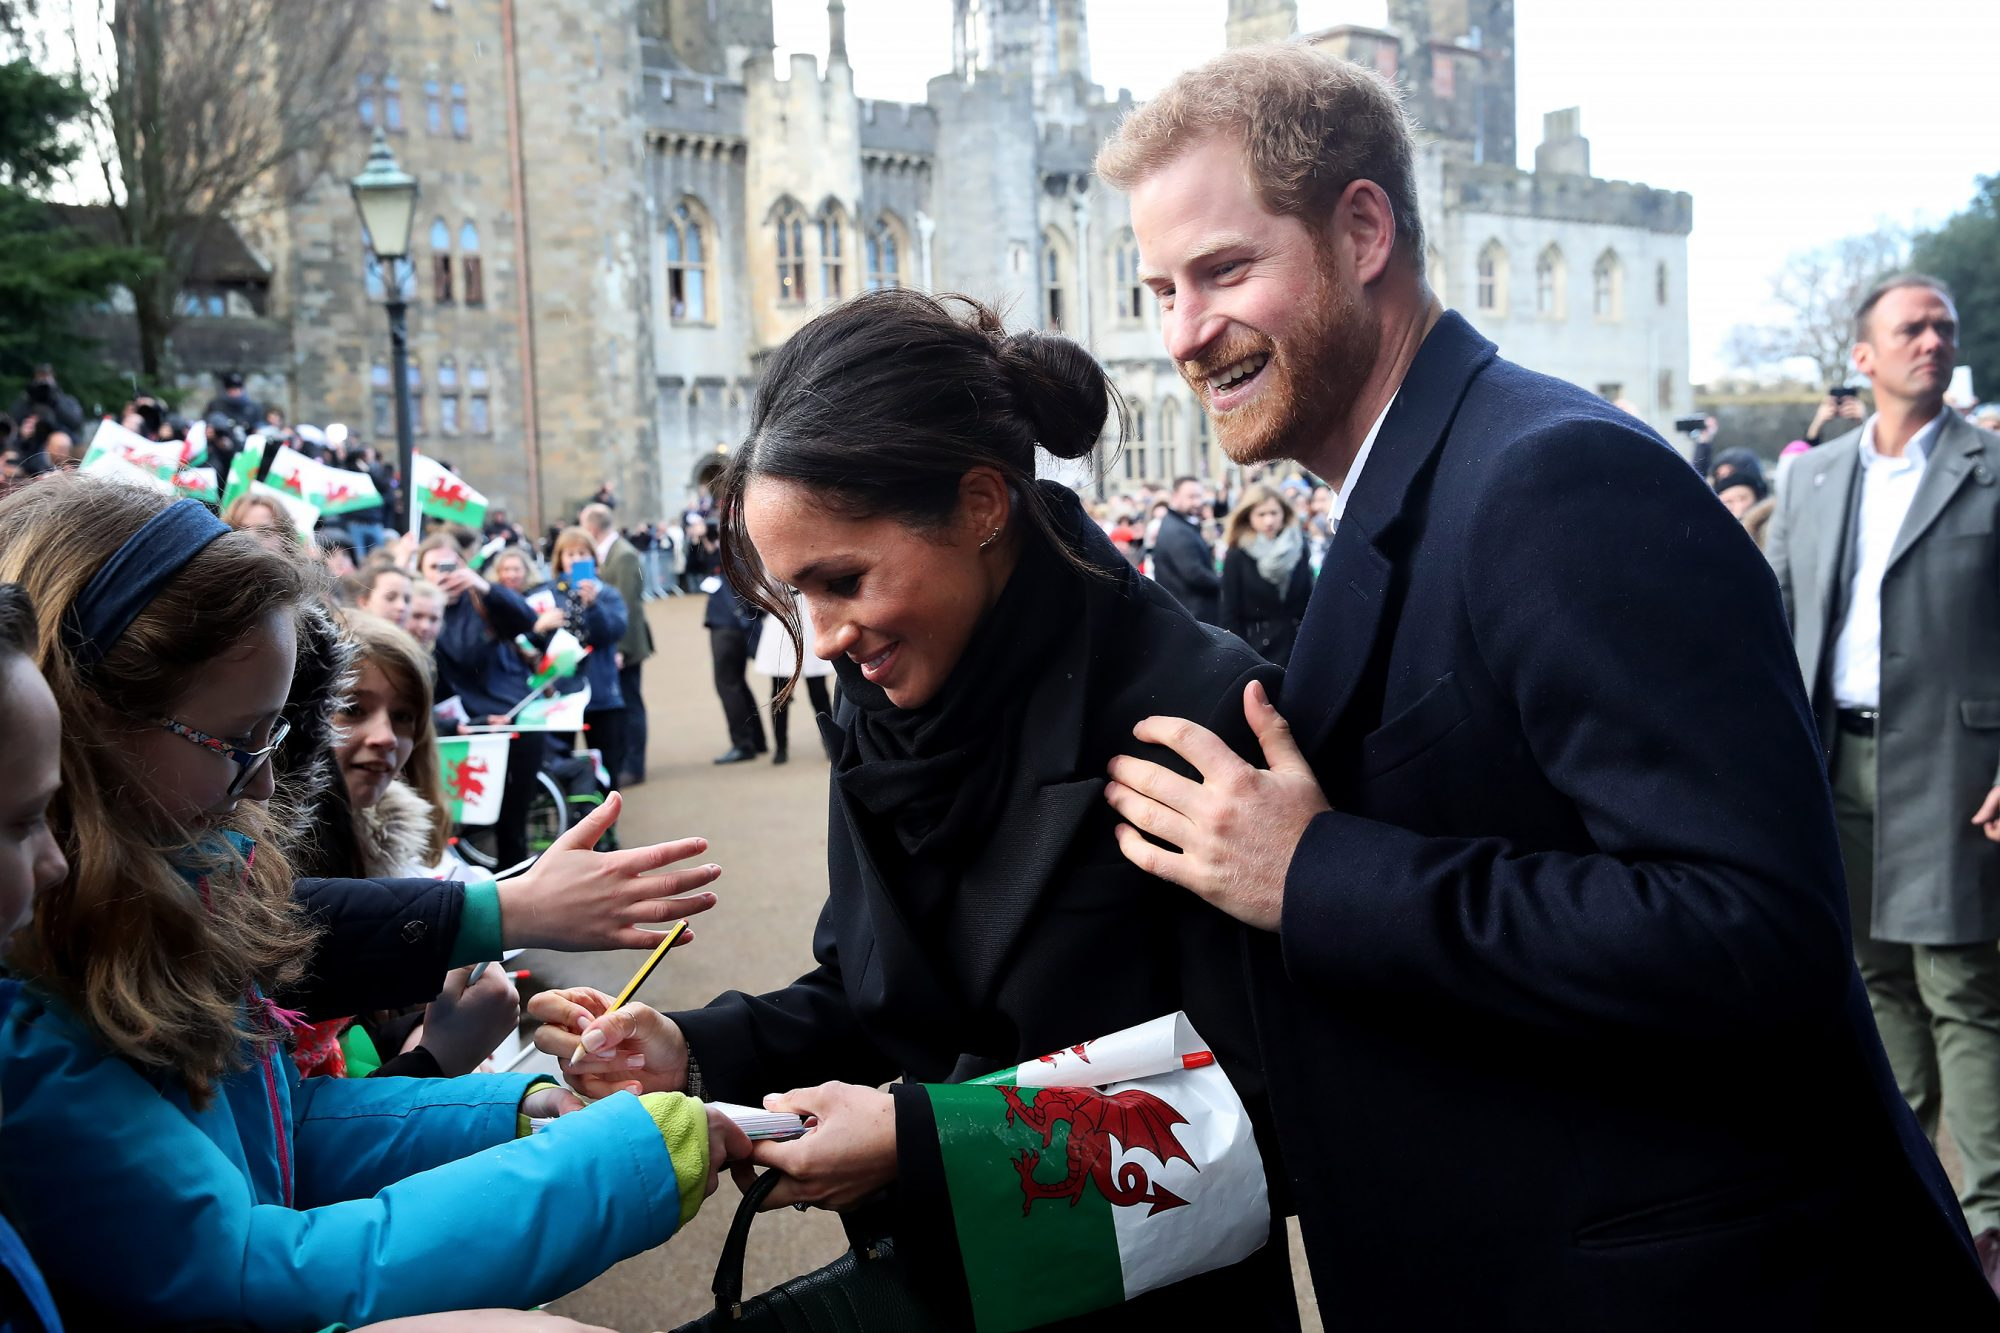 Prince Harry and Meghan Markle Visited a Castle Today and the Photos Are a Fairy Tale Come True!